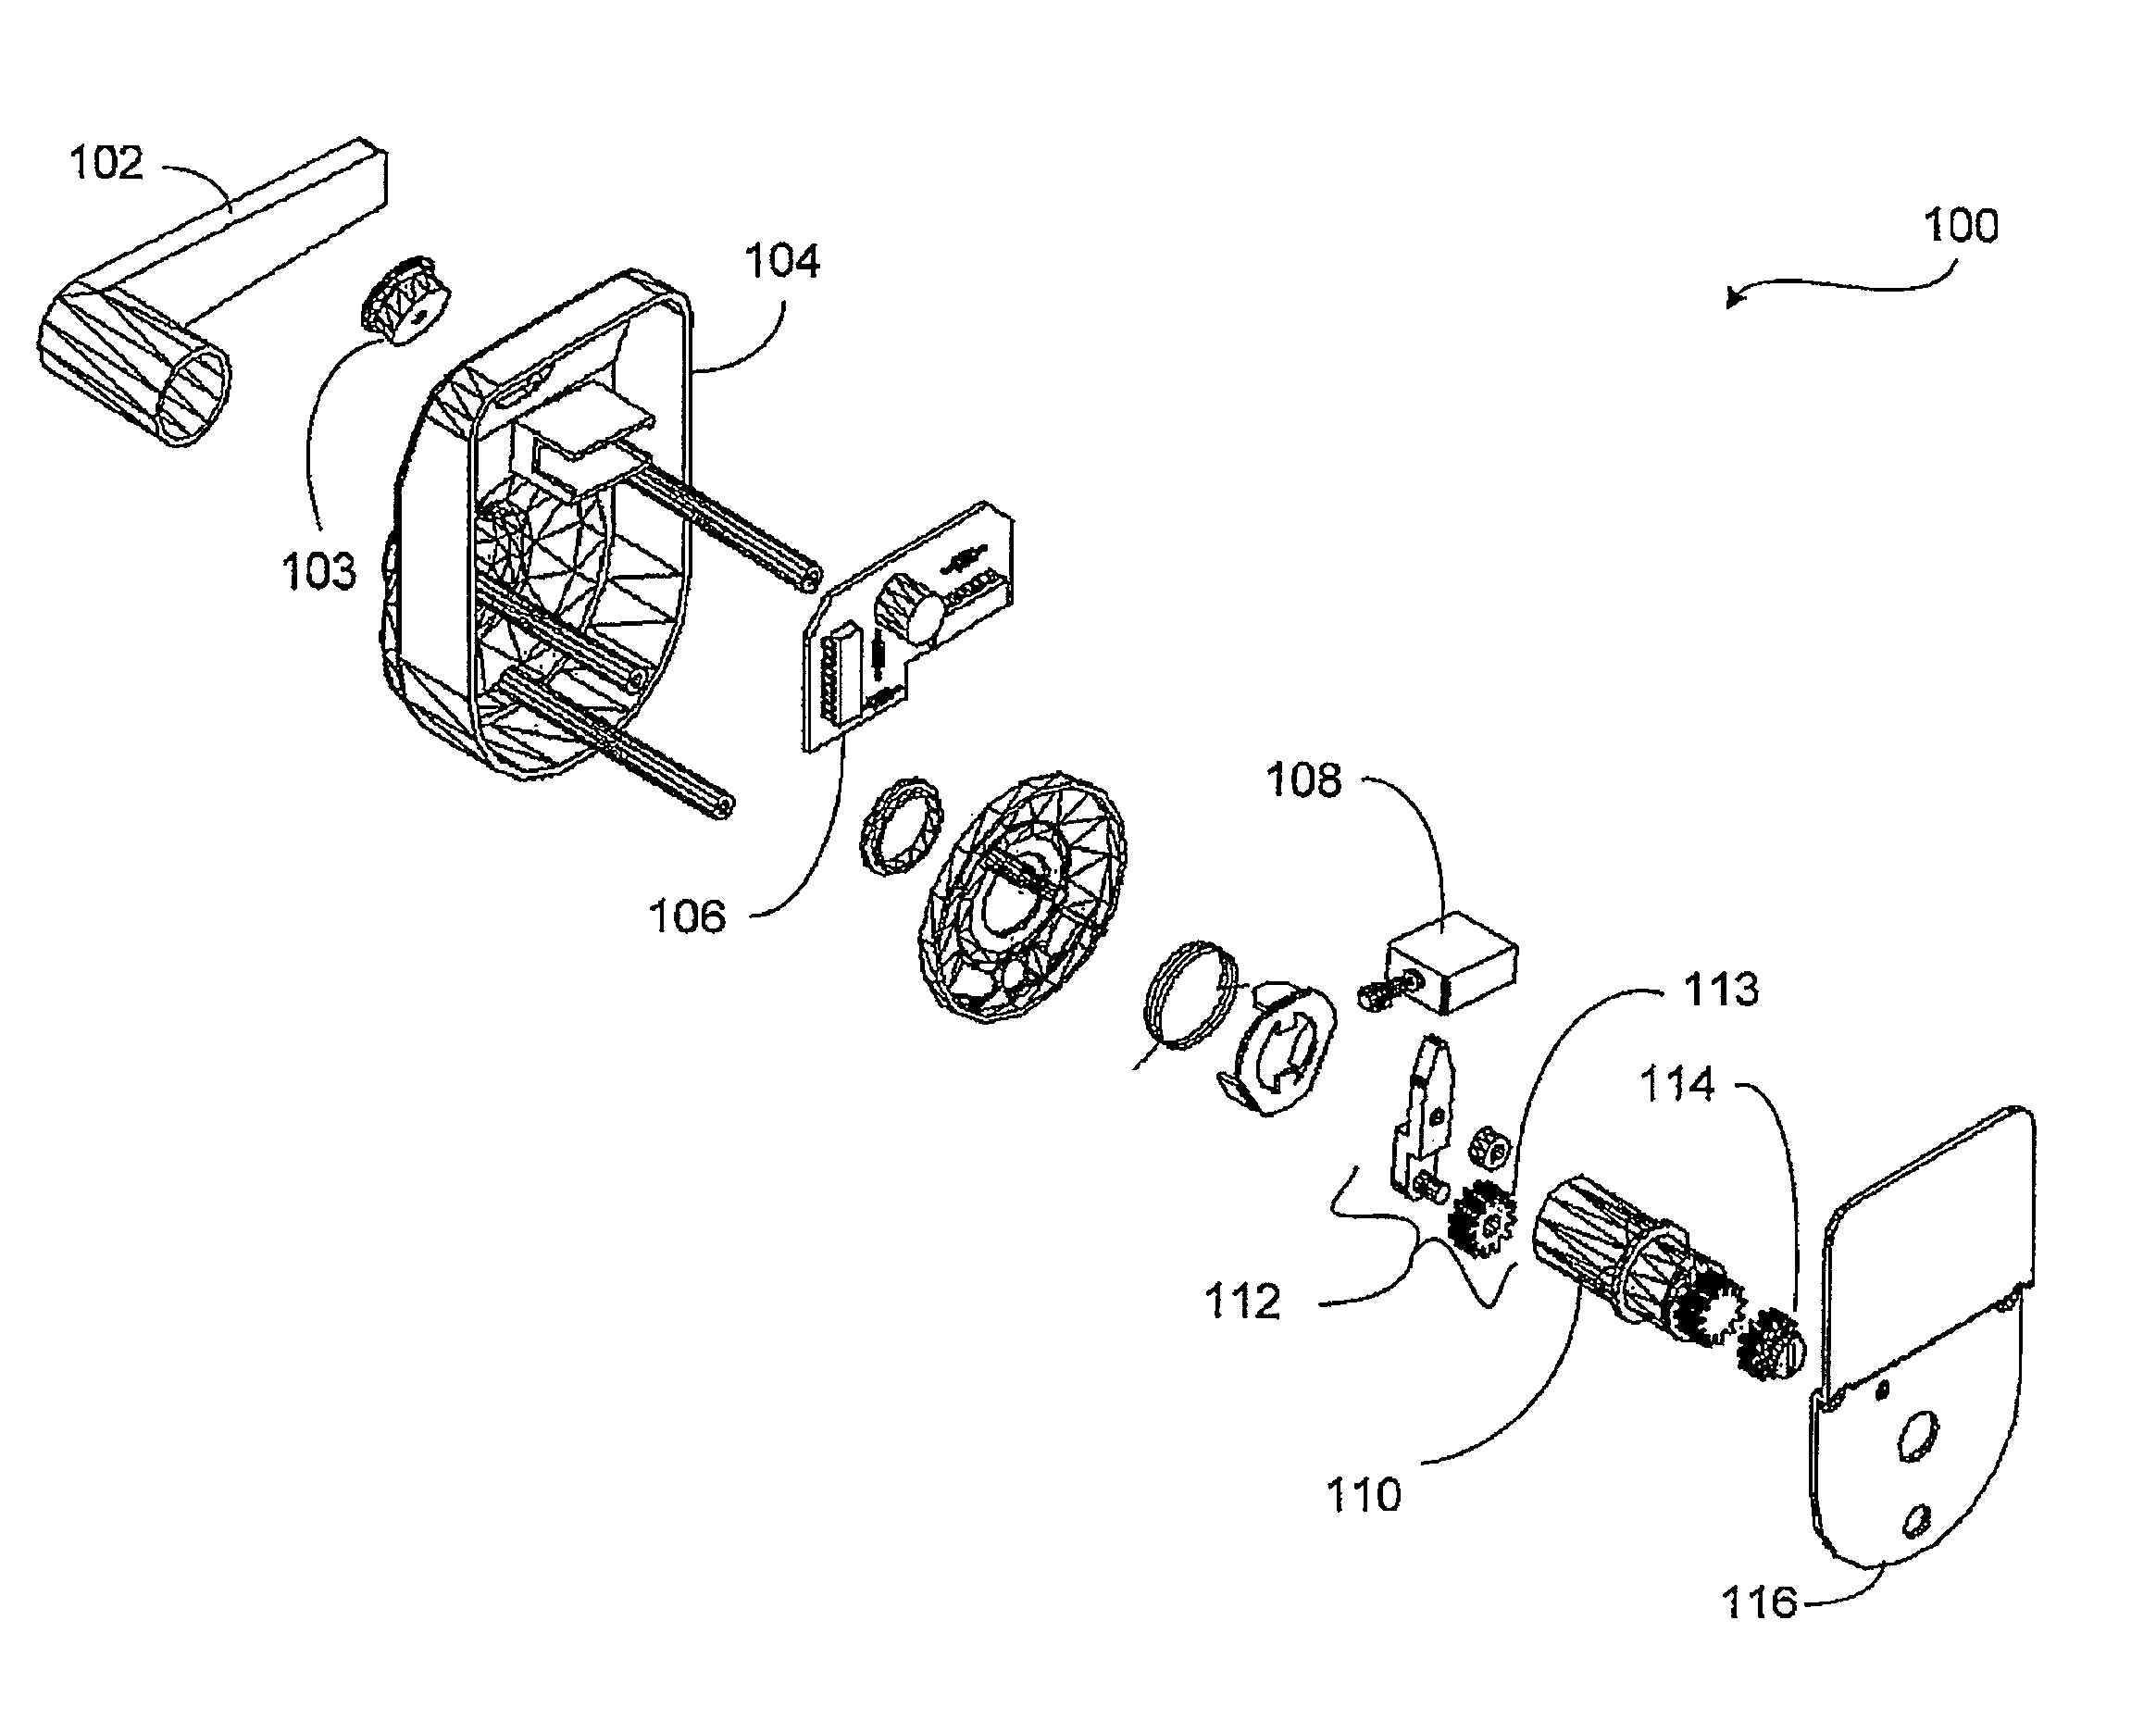 Schlage Lock Parts Diagram